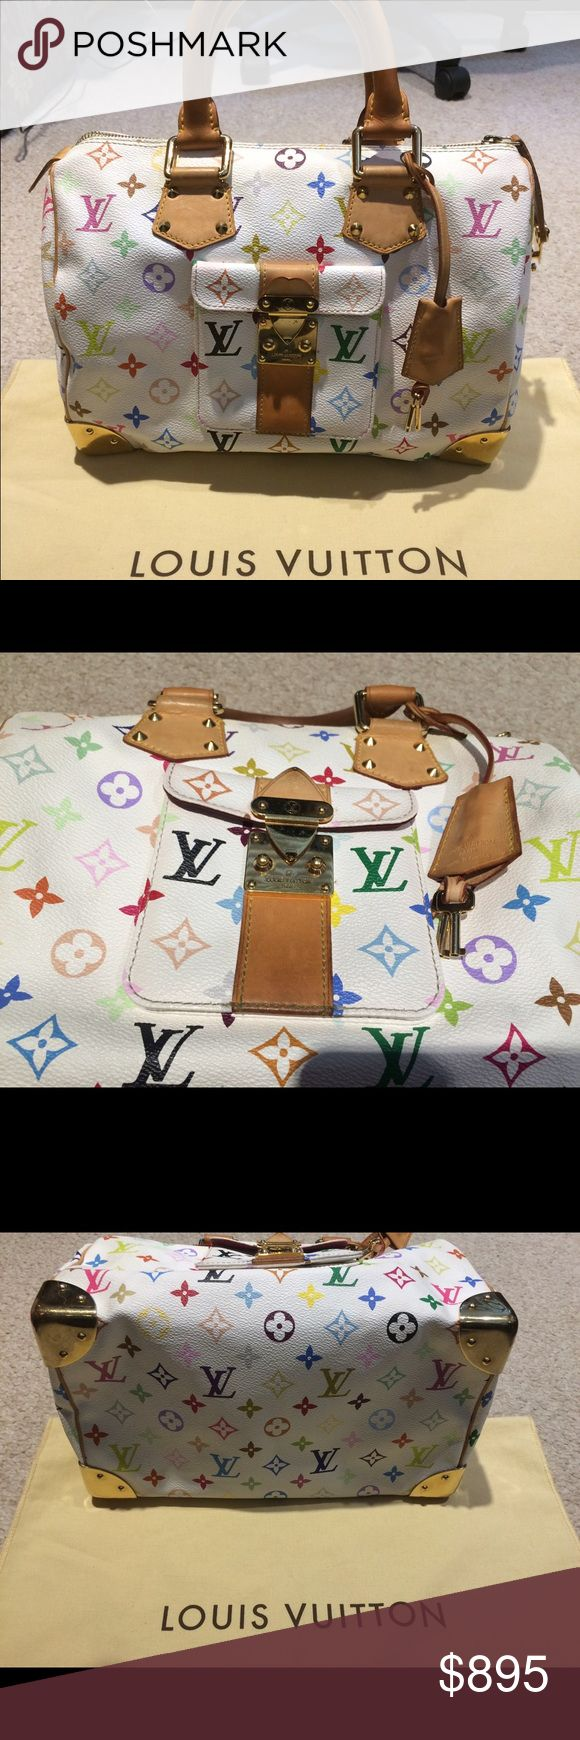 Spotted while shopping on Poshmark: Authentic Louis Vuitton Speedy 30 Multicolor! #poshmark #fashion #shopping #style #Louis Vuitton #Handbags